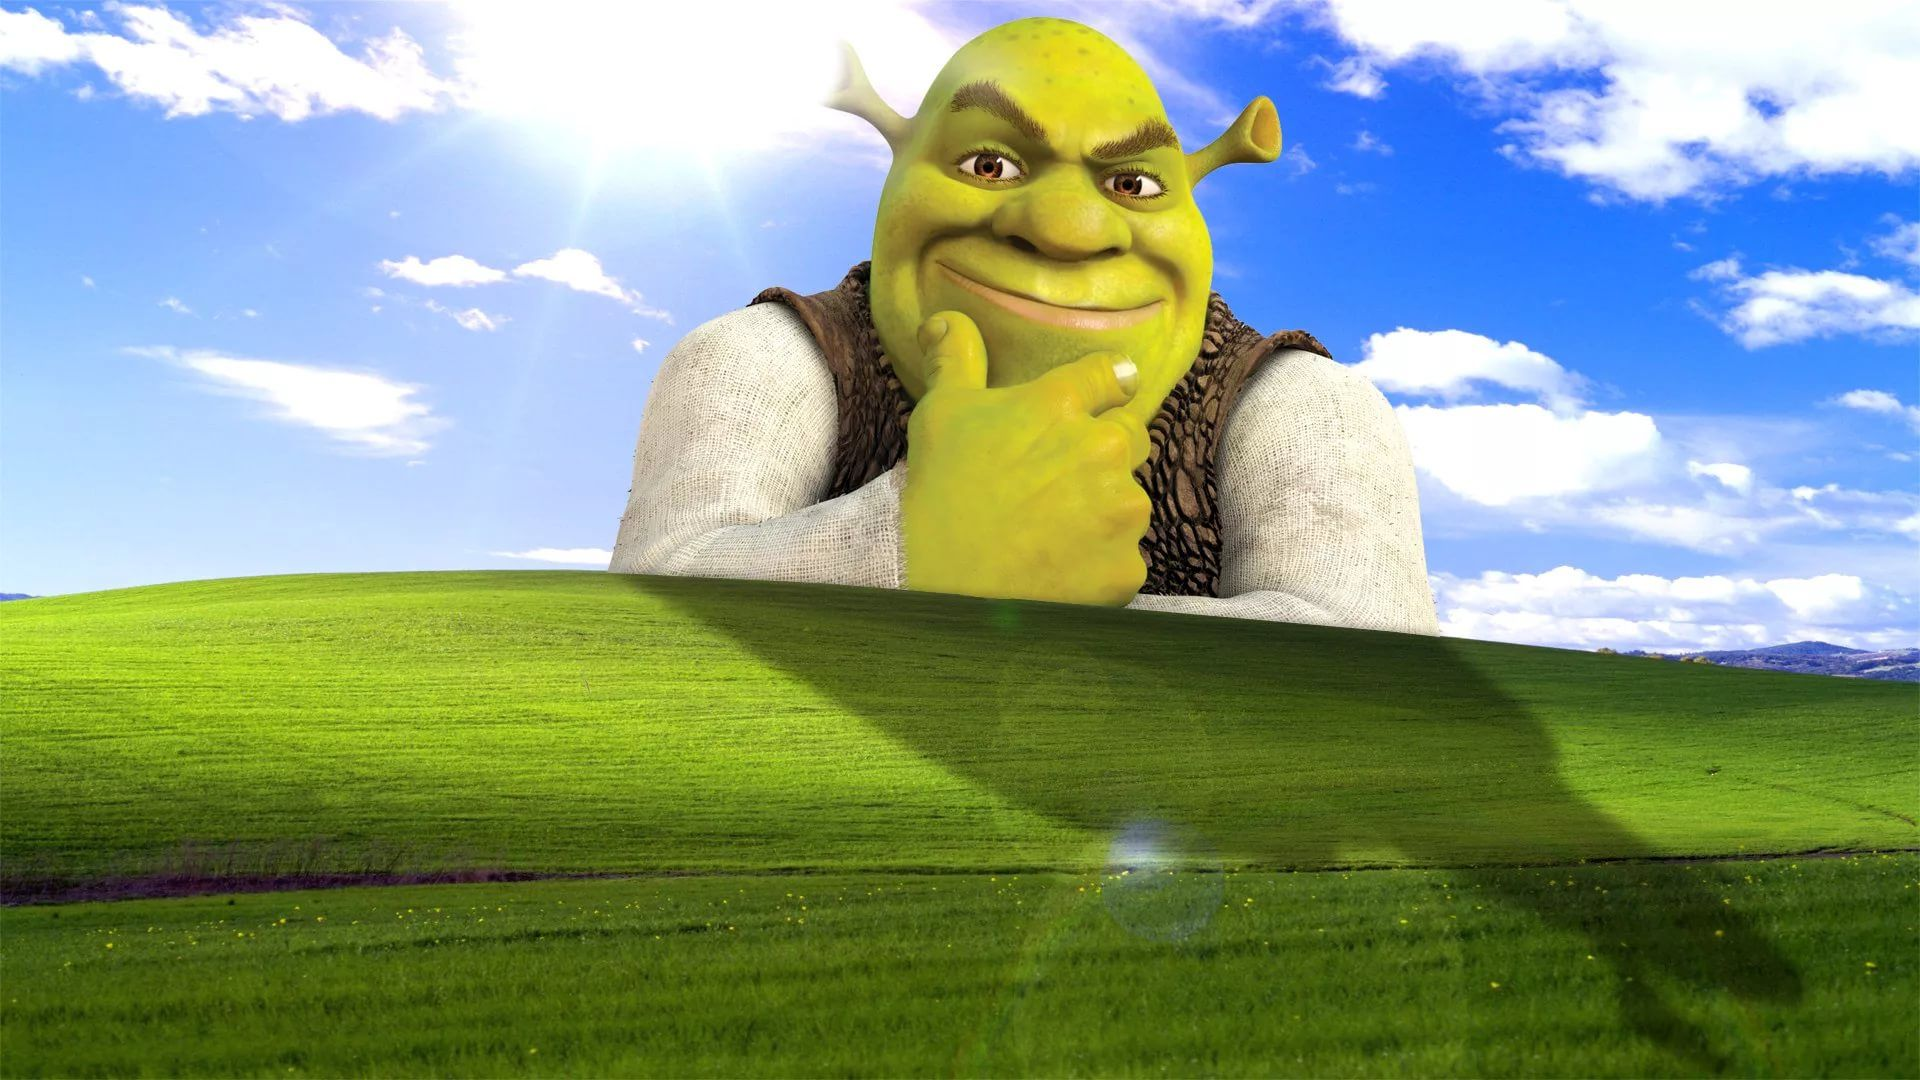 meme wallpapers shrek background pepe 1080 rare wallpaperboat wallpaperplay